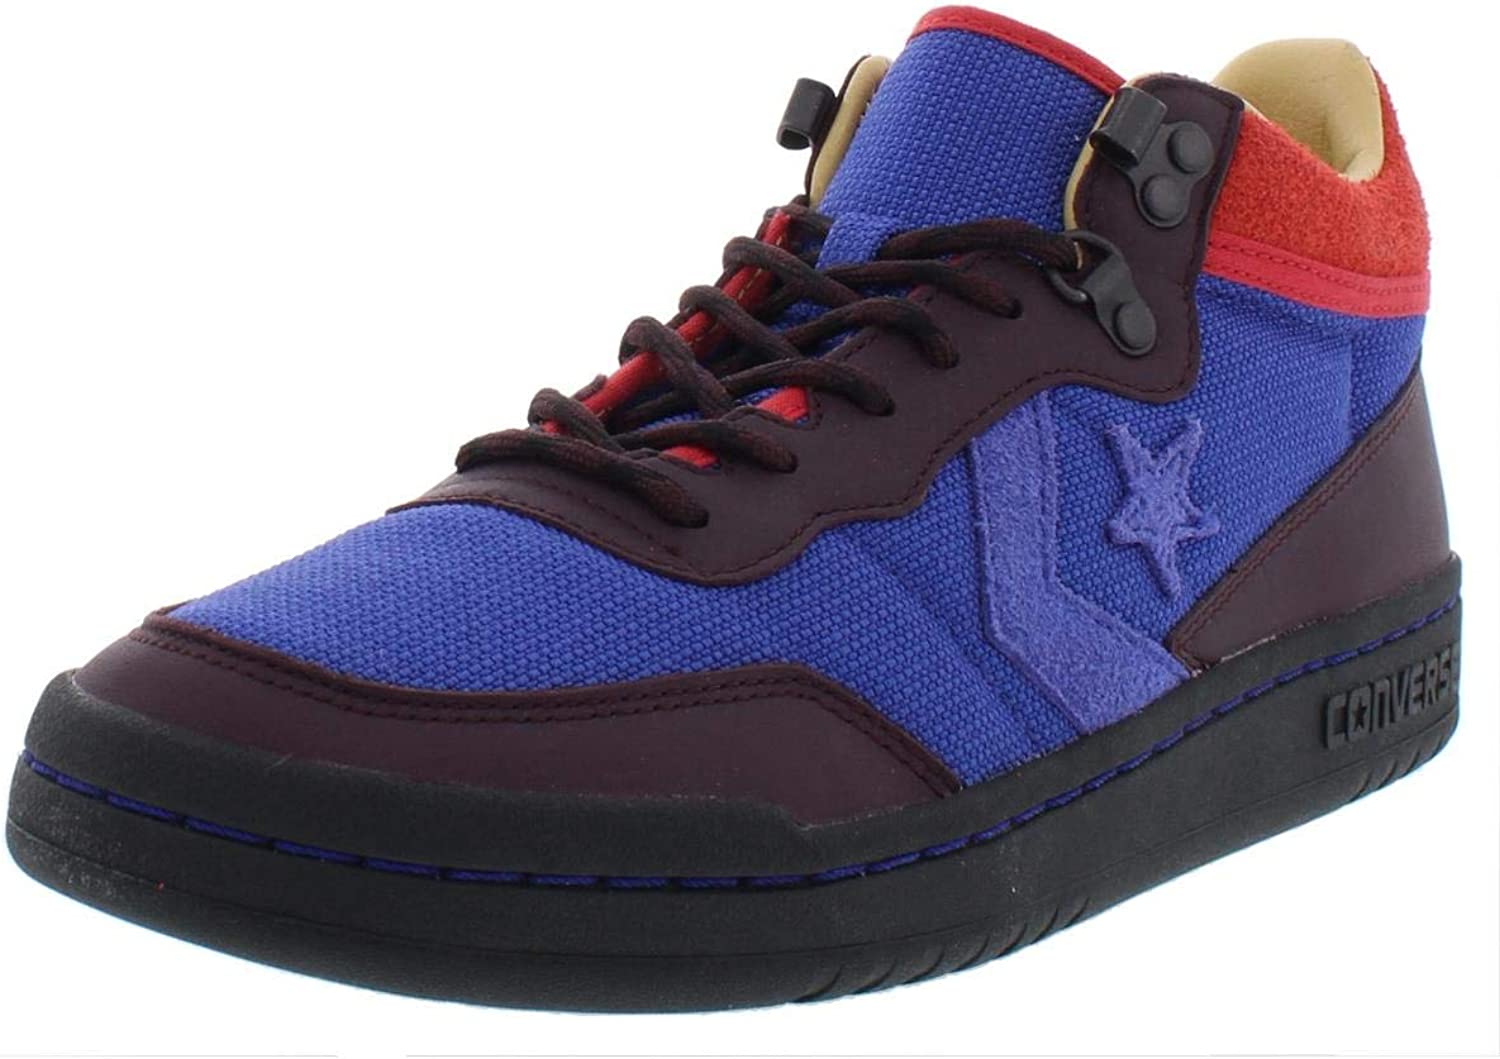 Converse Mens Fastbreak Leather Mid Top Fashion Sneakers